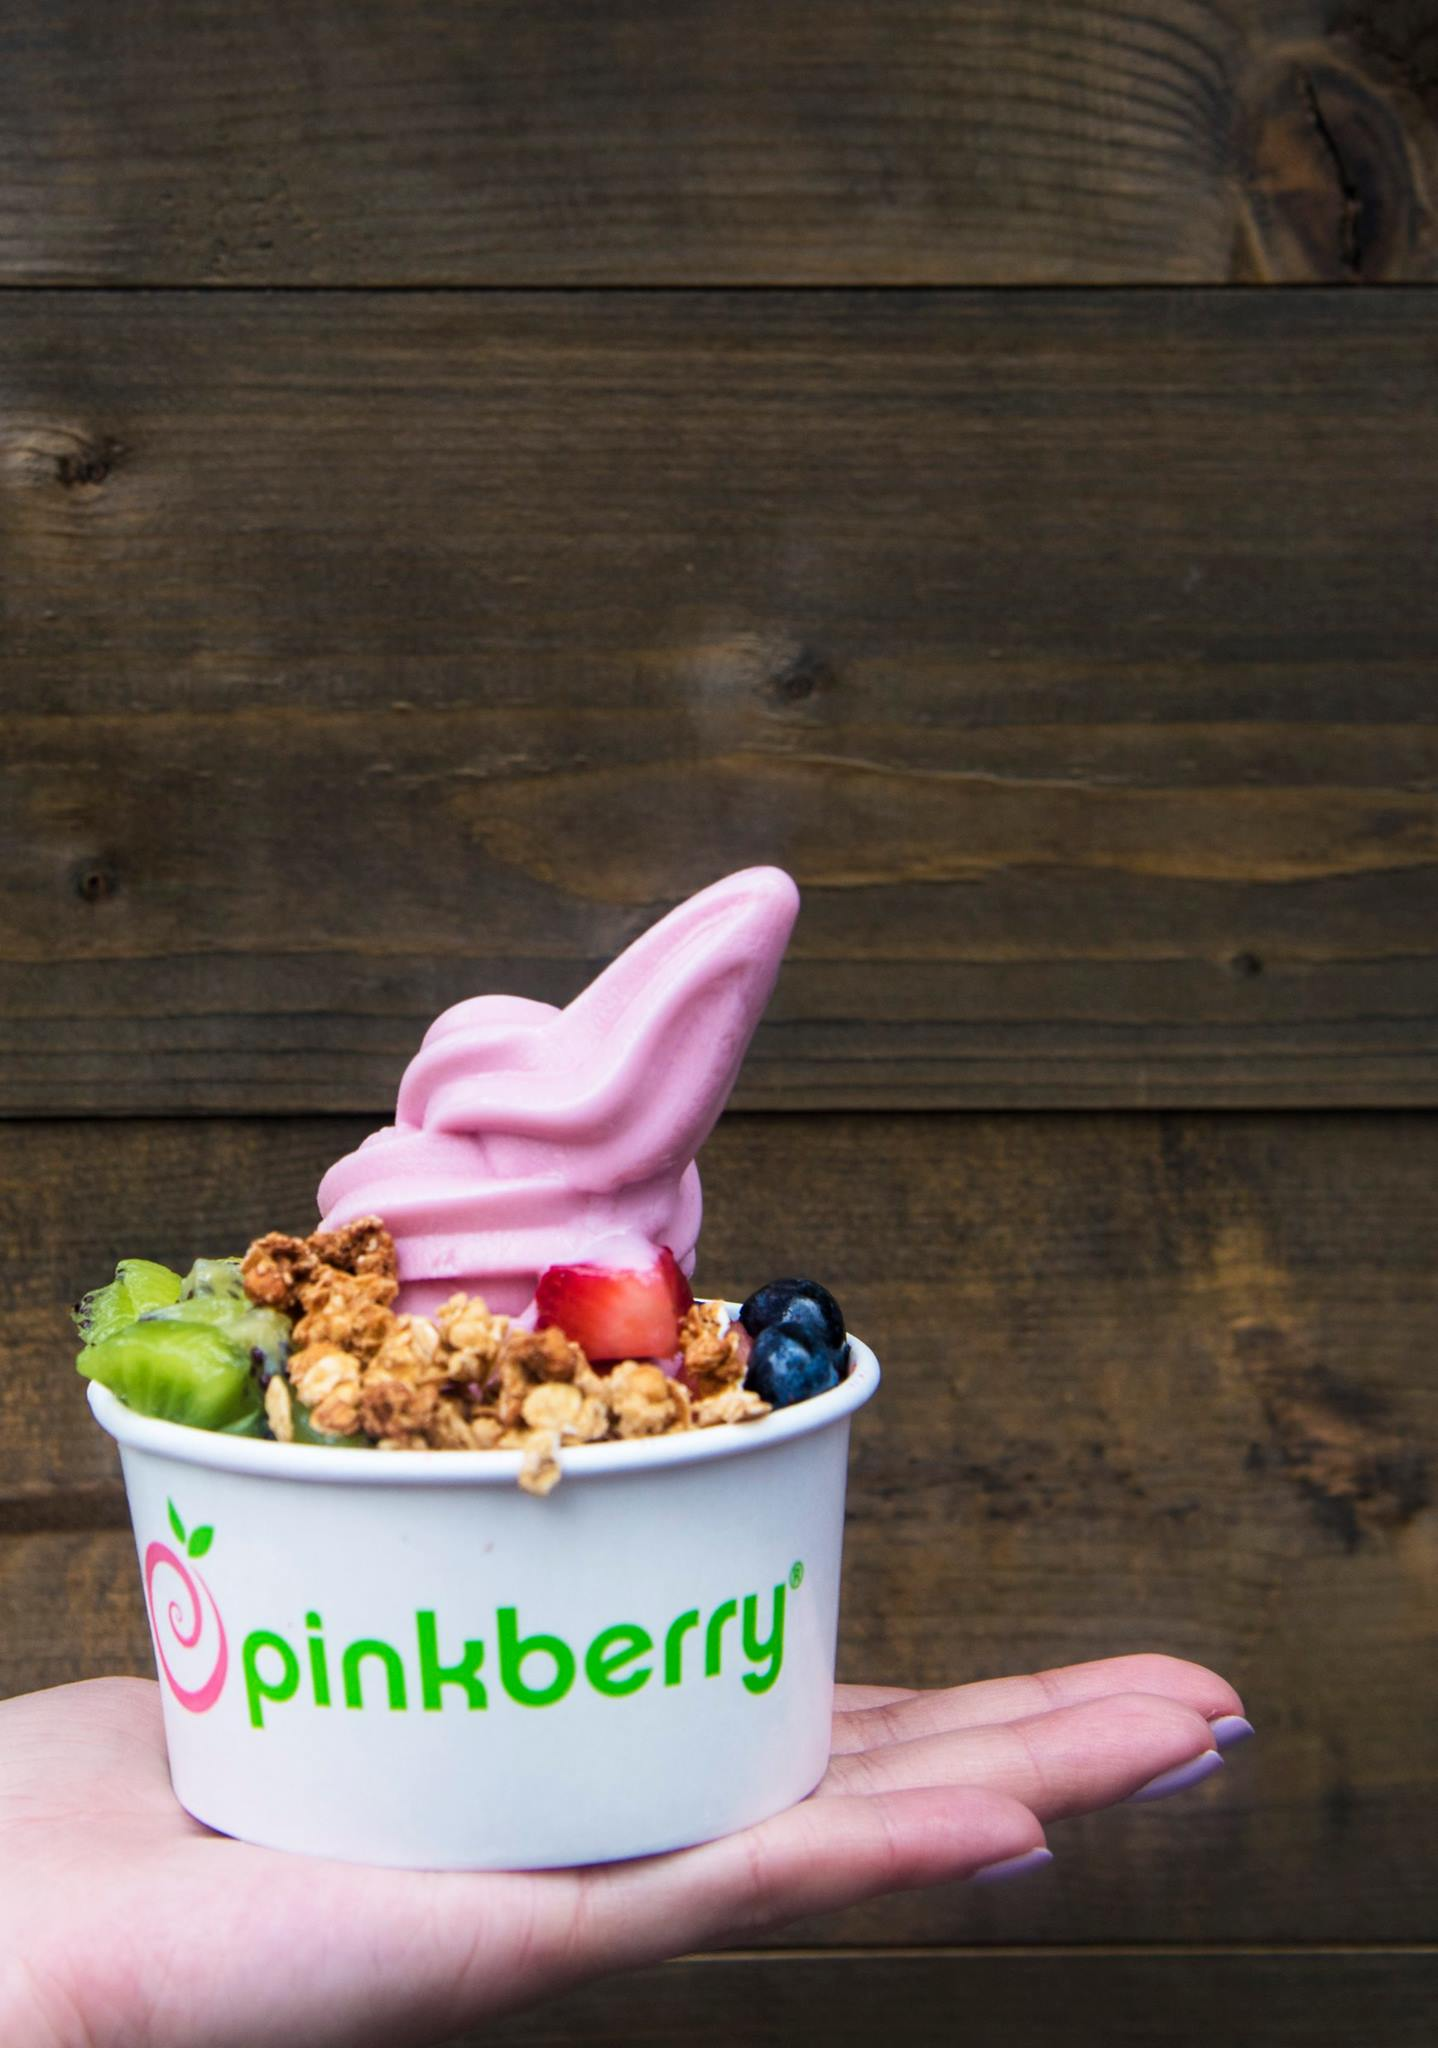 Pinkberry Frozen Yogurt and Pinkbee's ® Low Fat, Milk Ice Cream Taste as Good as they Make You Feel We create distinctive Pinkberry® Frozen Yogurt and Pinkbee's® Low-Fat, Milk Ice Cream flavors by selecting and combining fresh ingredients.